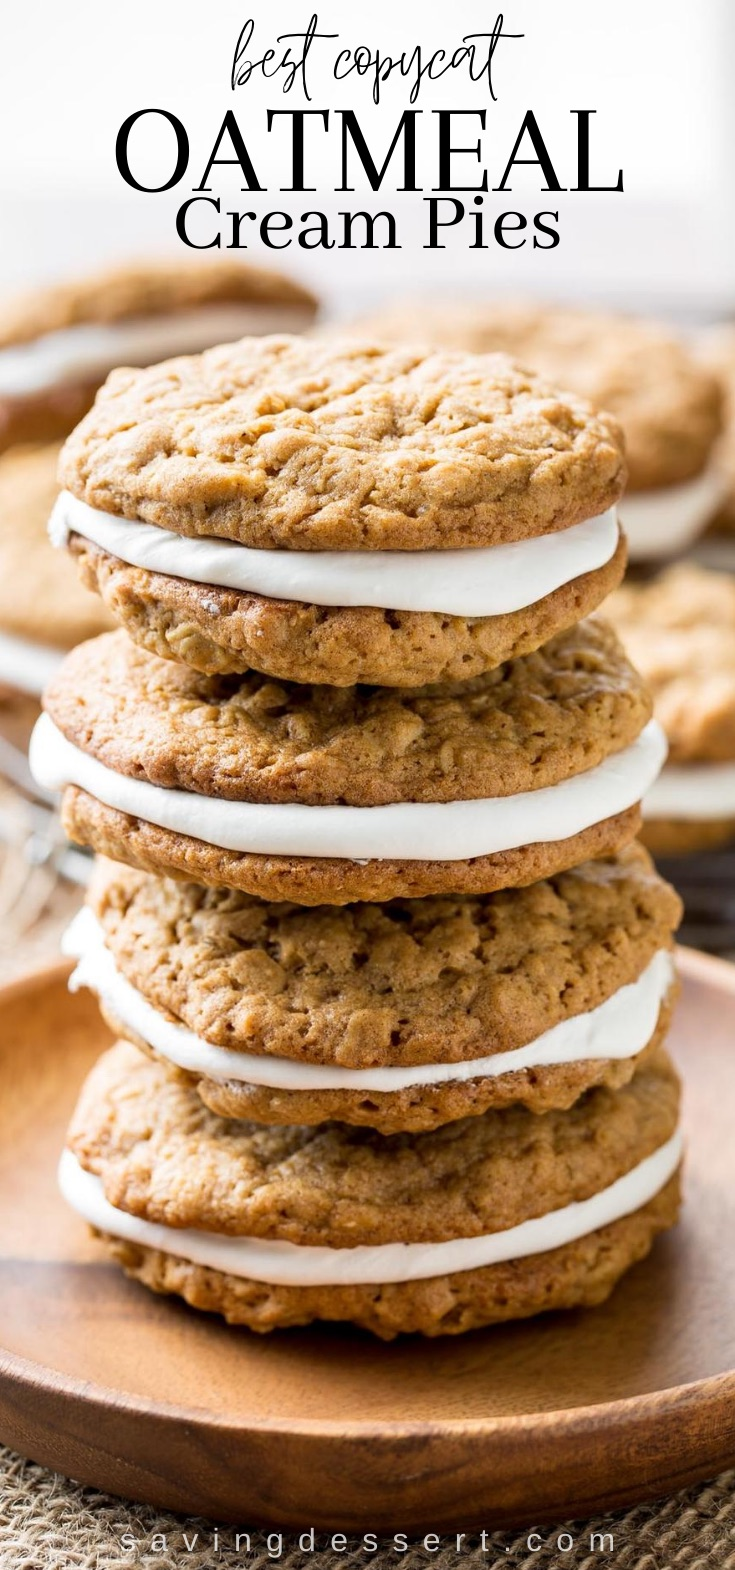 A stack of homemade Oatmeal Cream Pie Cookies